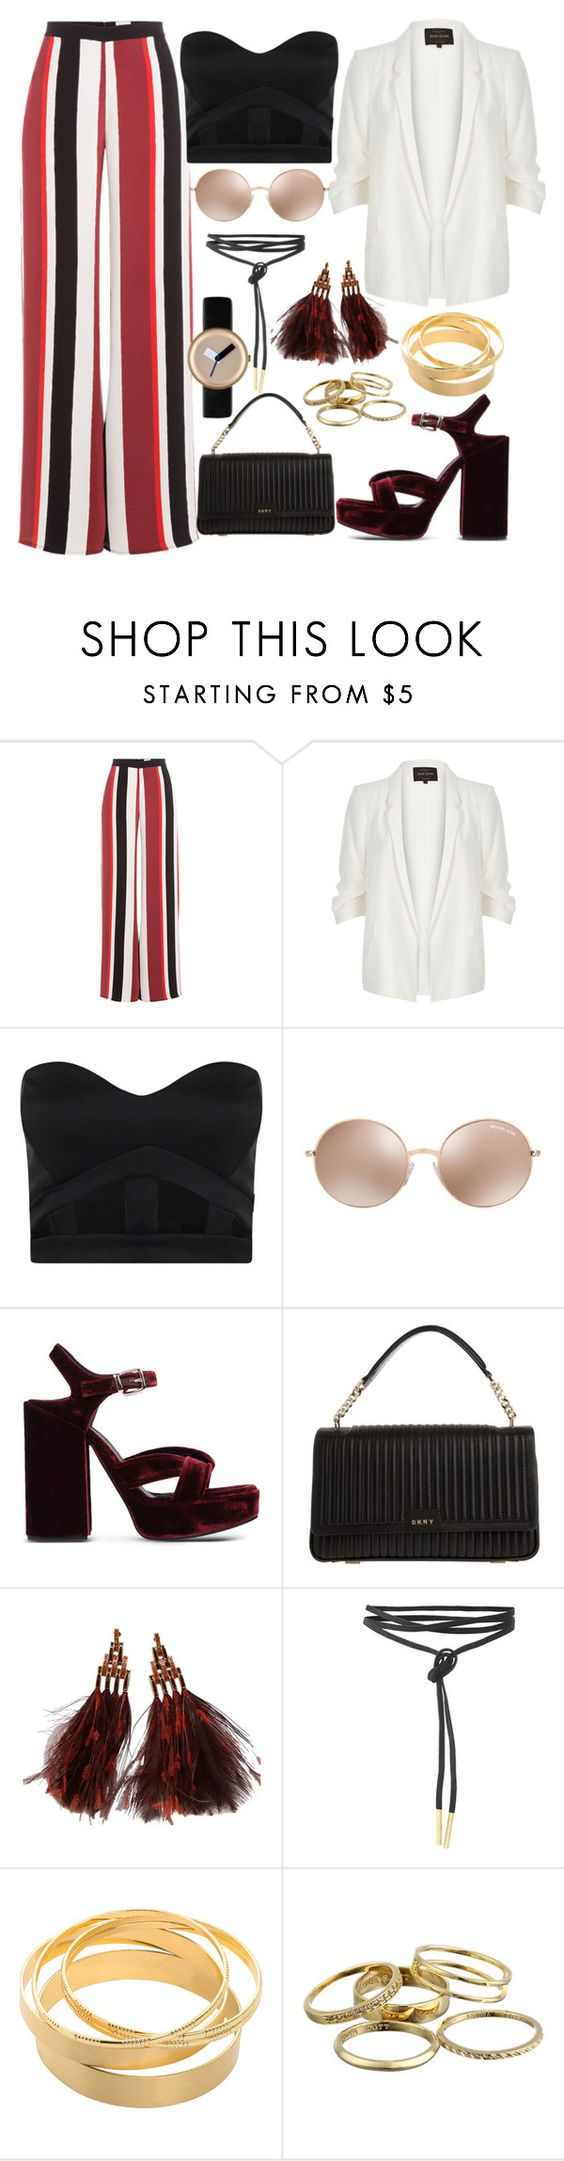 BBHMM by joslynaurora on Polyvore featuring mode, Boohoo, River Island, Zeus+Dione, Jil Sander, DKNY, Louis Vuitton, Nomad, Kendra Scott and Michael Kors